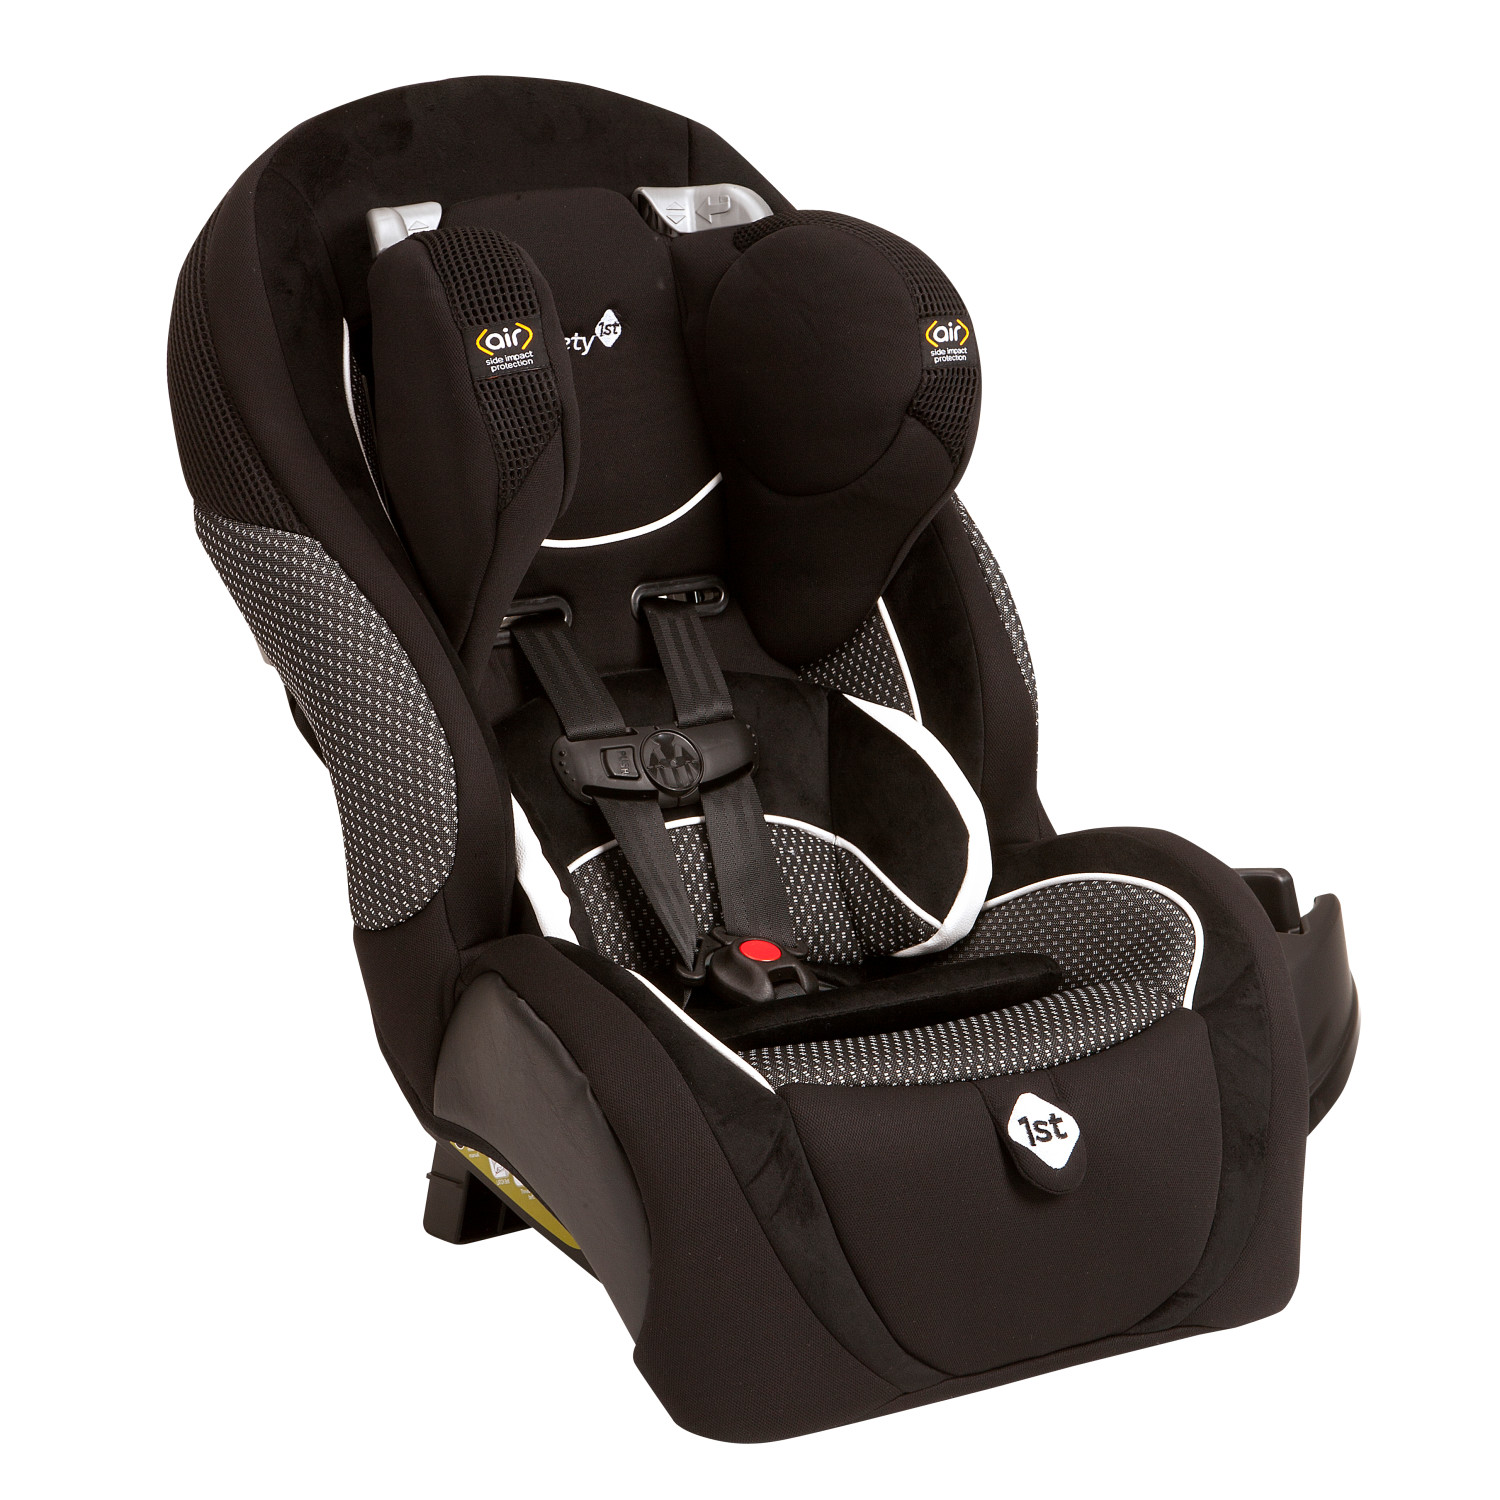 Safety-1st-Complete-Air-65-Convertible-Car-Seat thumbnail 3